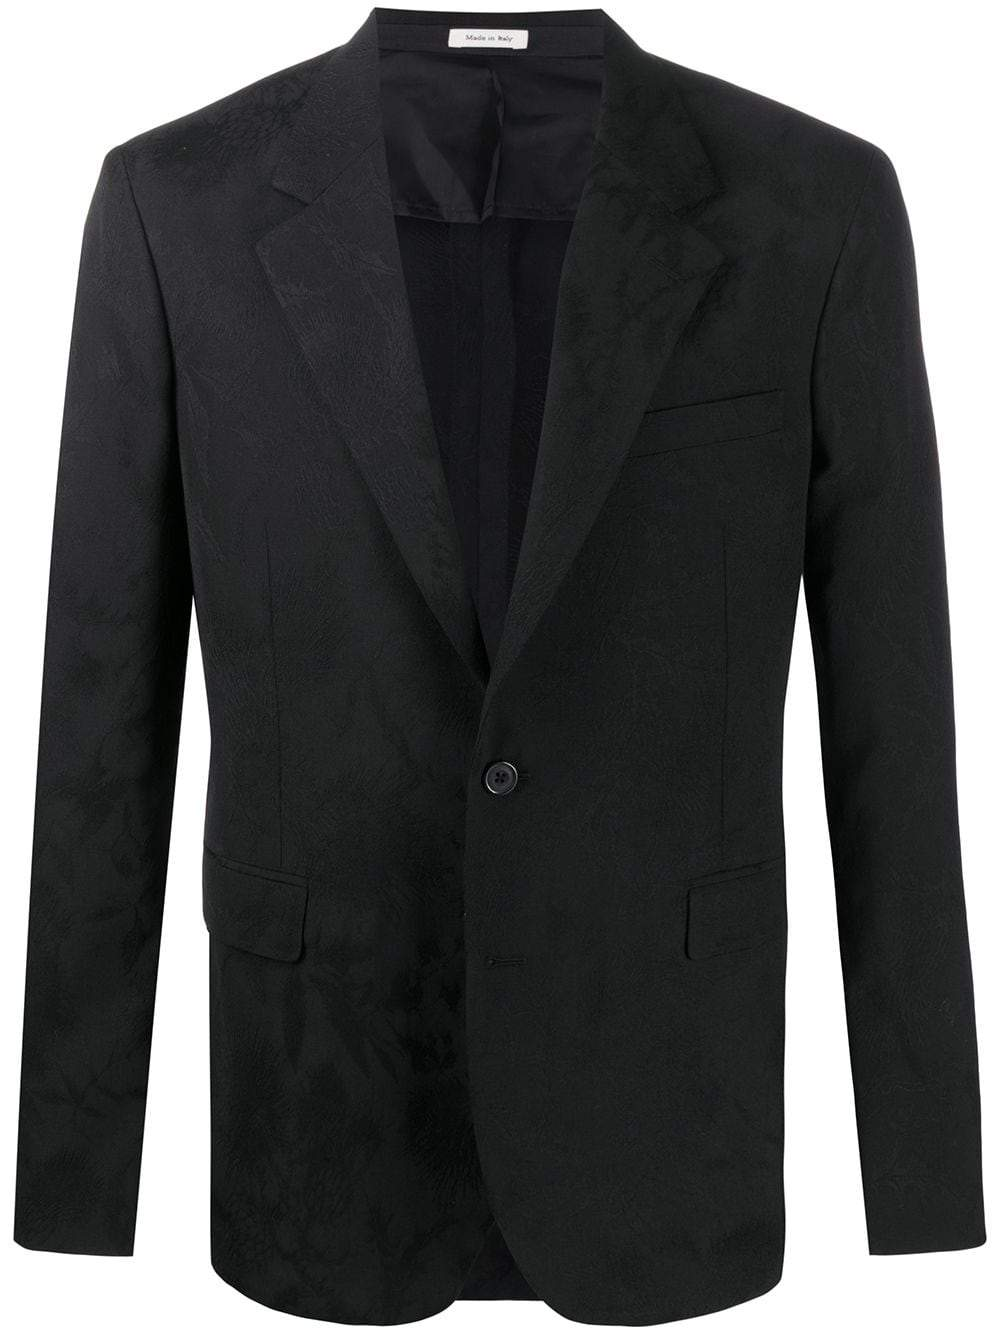 Alexander McQueen 2 button tonal zip up jacket - Maison De Fashion